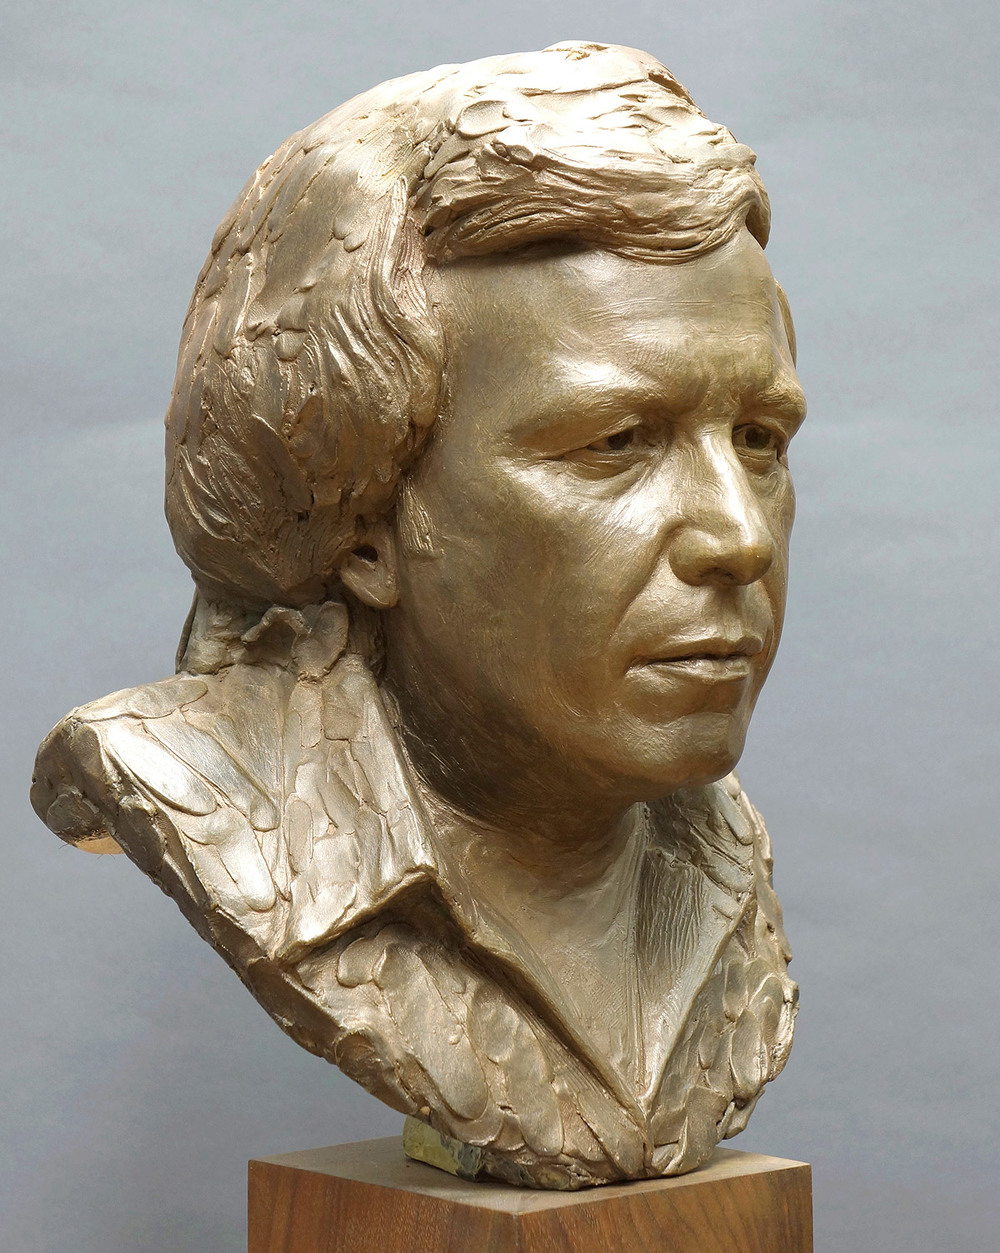 Completed bronze portrait sculpture of Don McLean by Zenos Frudakis.